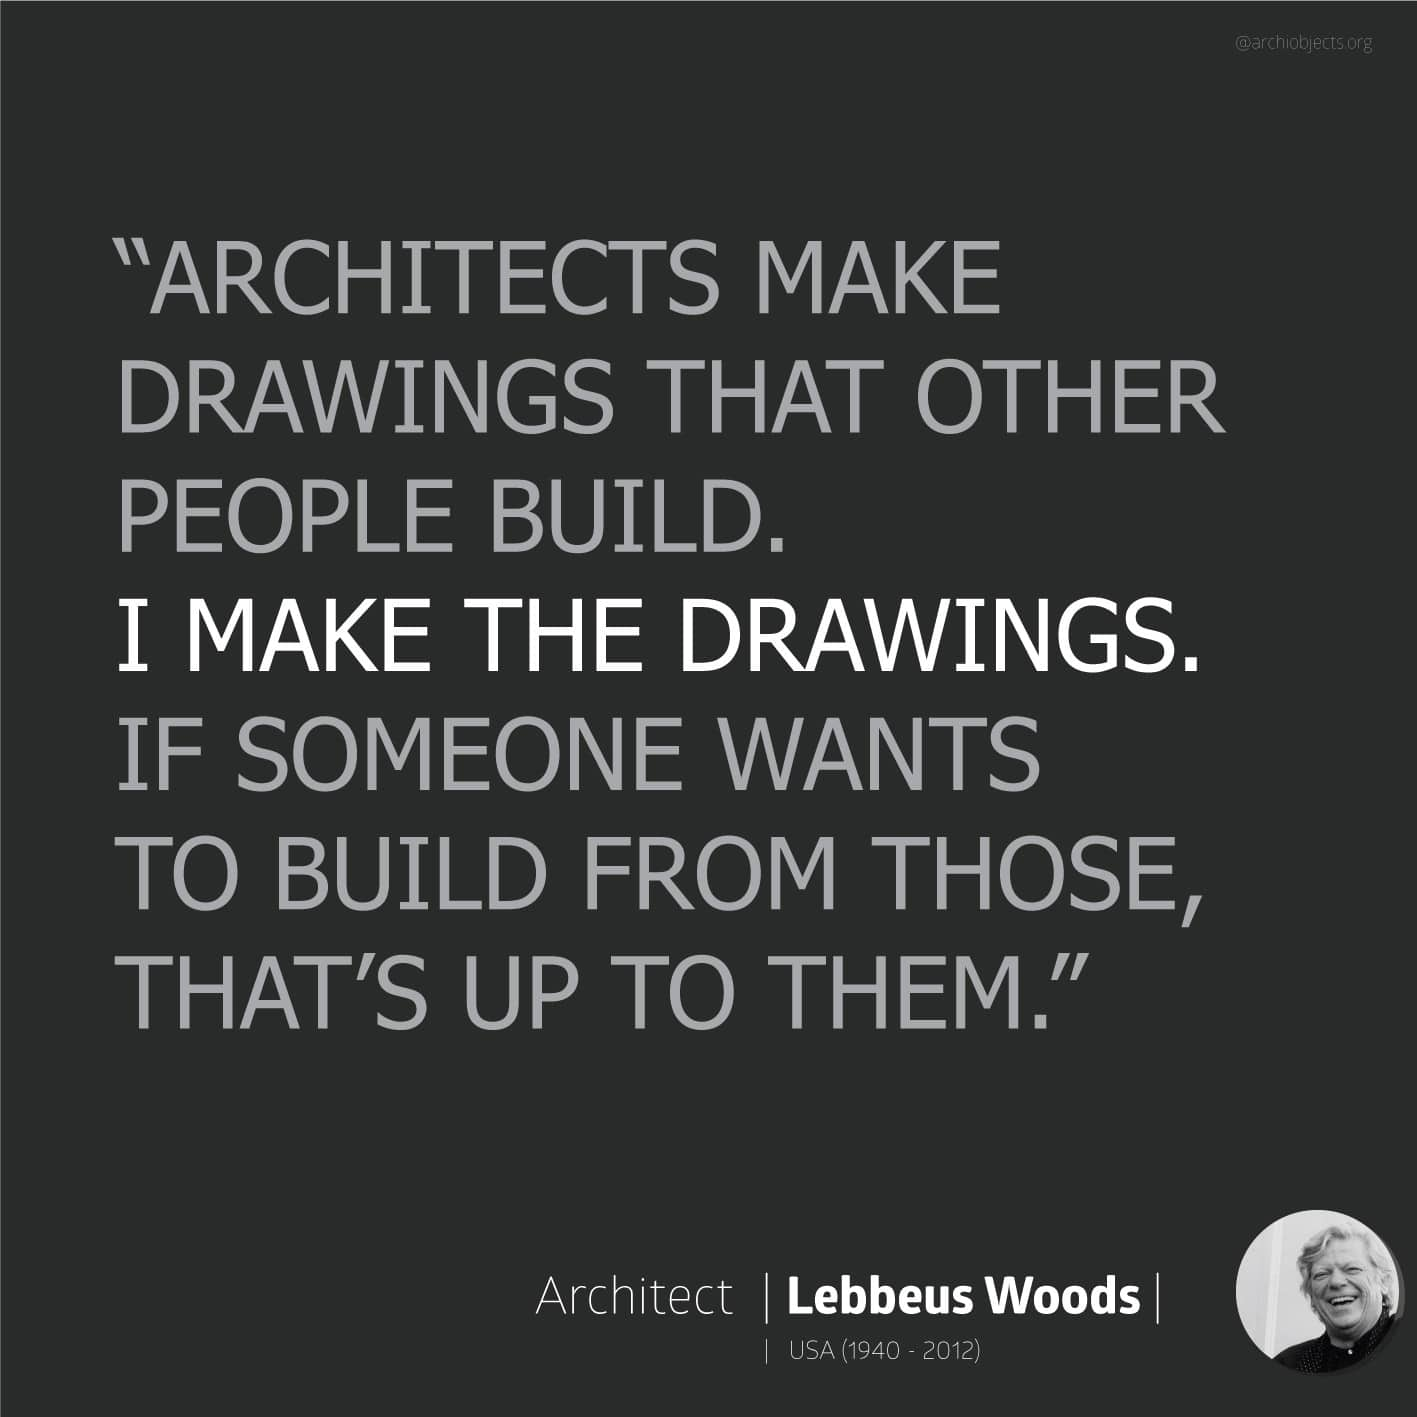 lebbeus woods quote Architectural Quotes - Worth spreading Architects' voice